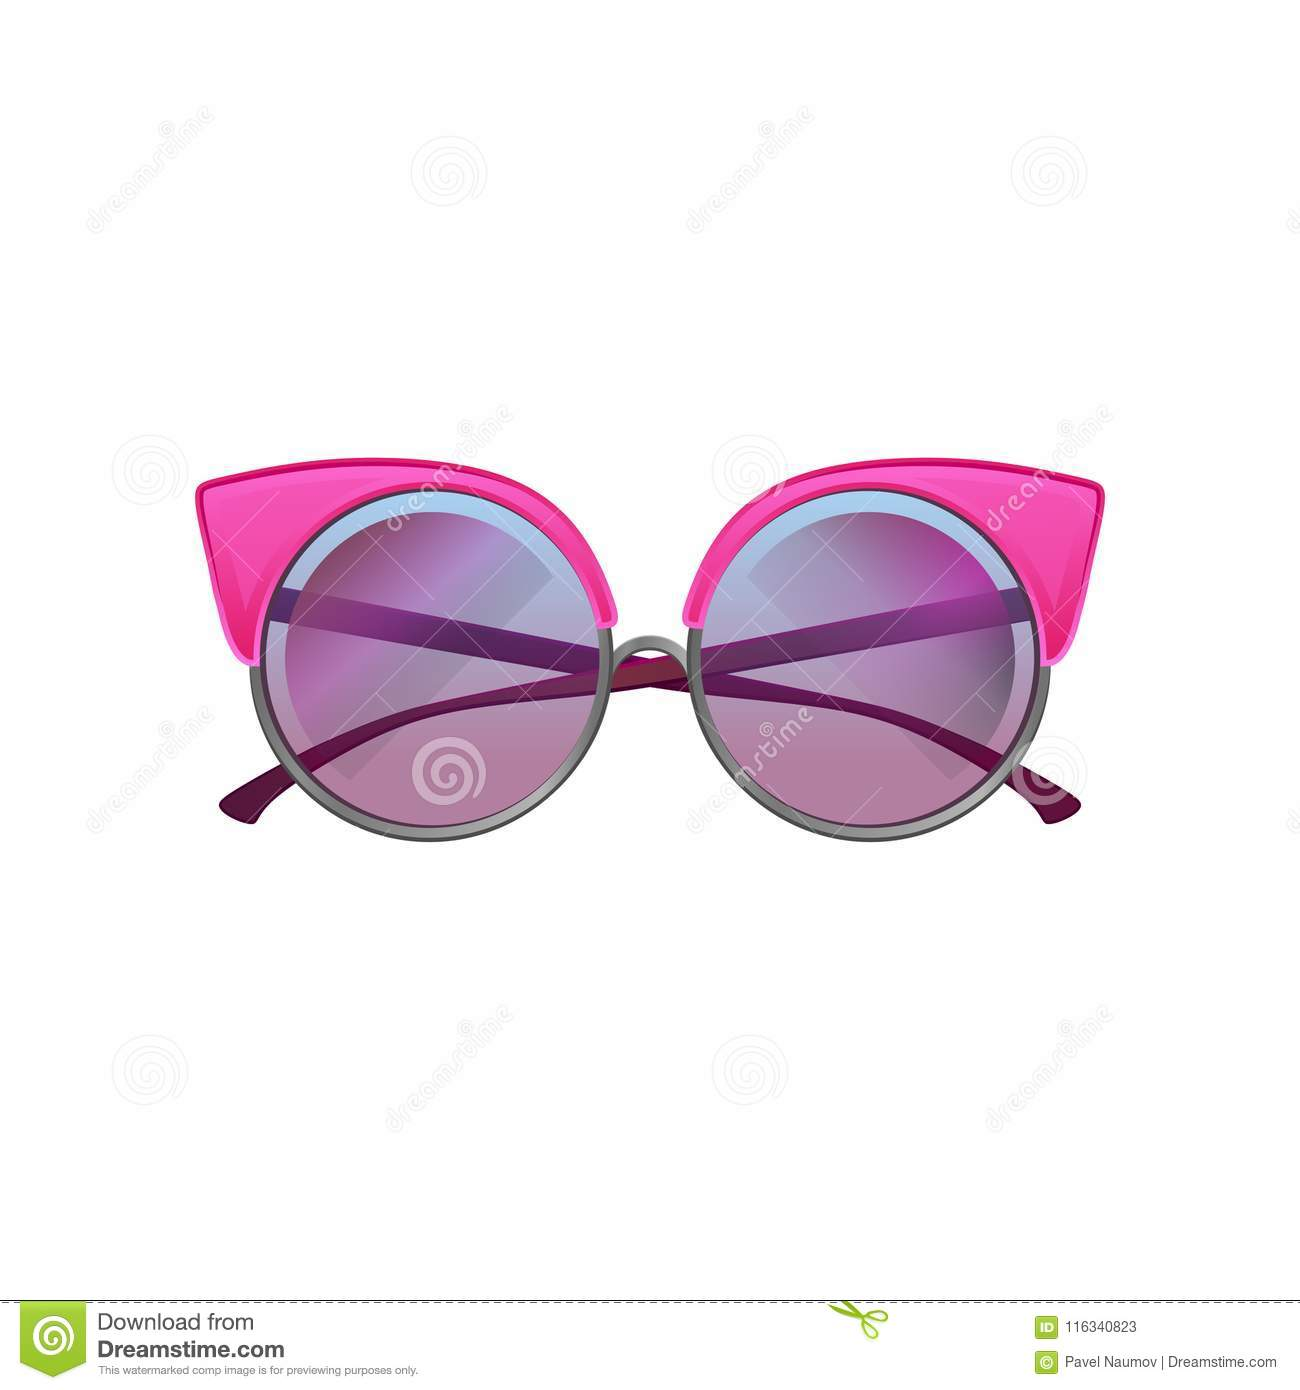 3caada6b82470 Round sunglasses with pink metal frame and purple gradient lenses.  Accessory for stylish women. Cartoon style icon of protective glasses.